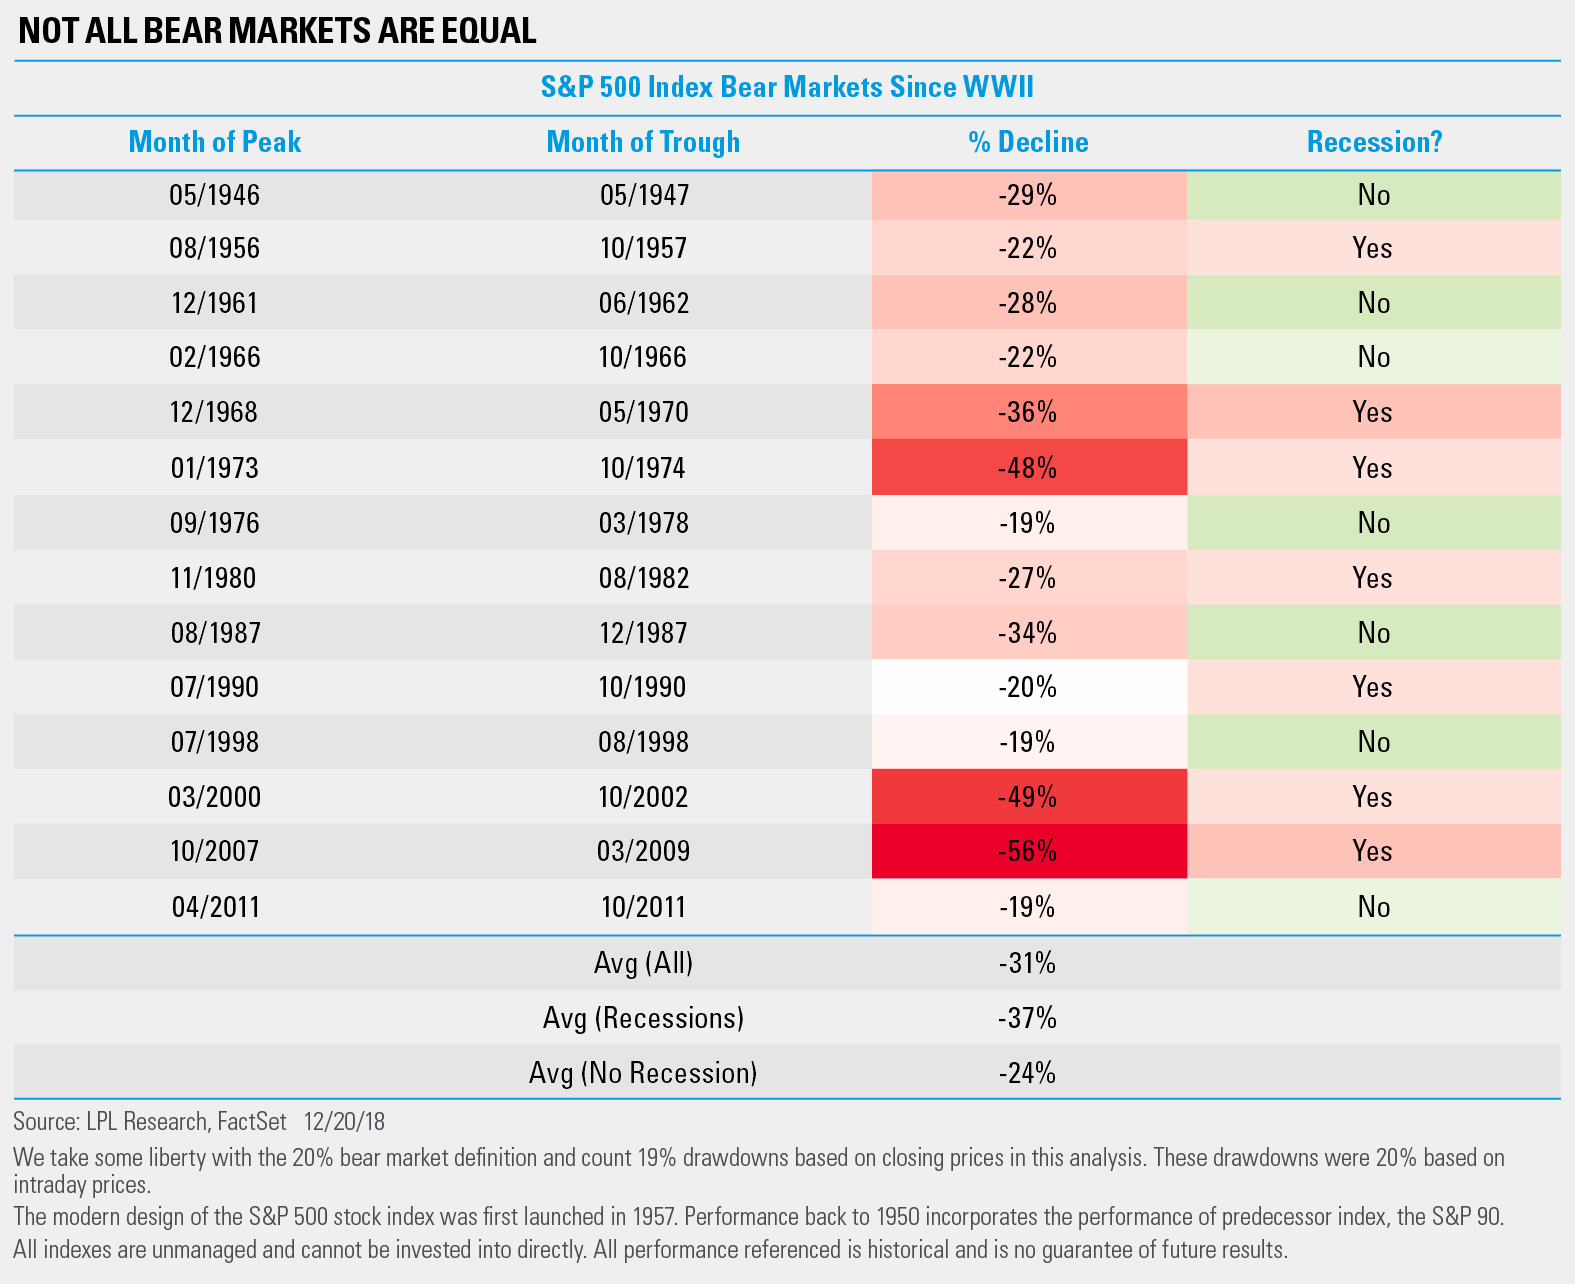 Chart - Not all bear markets are equal